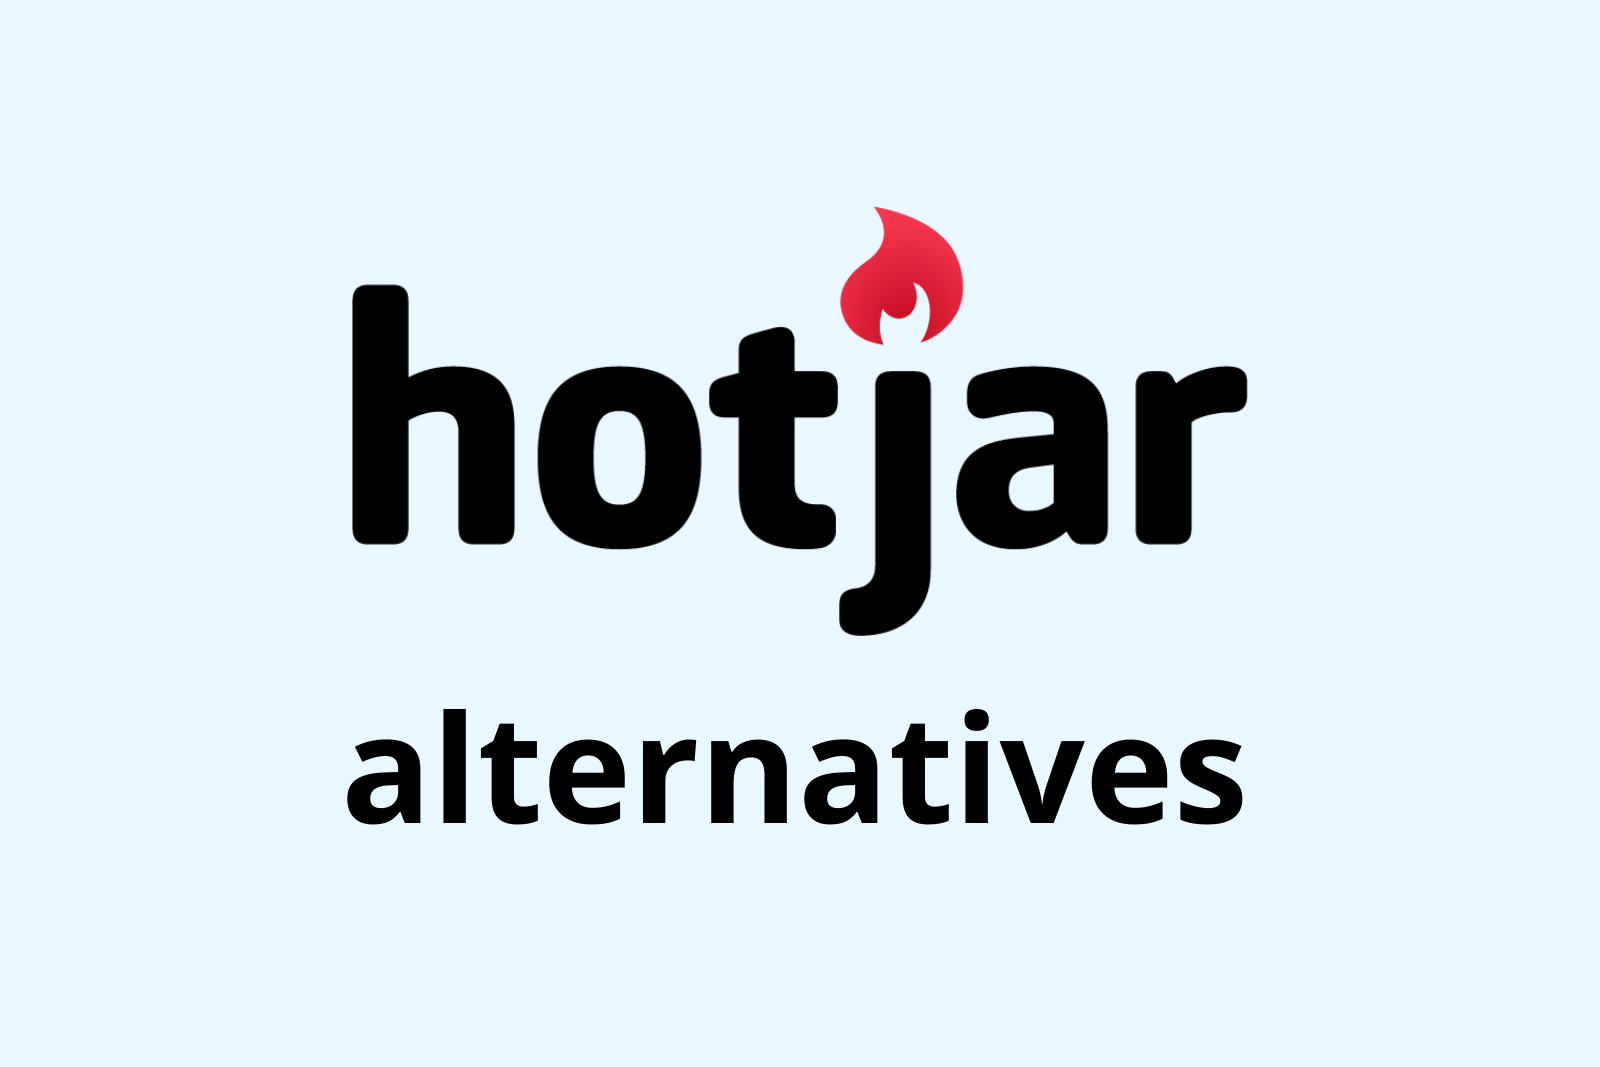 hotjar alternatives